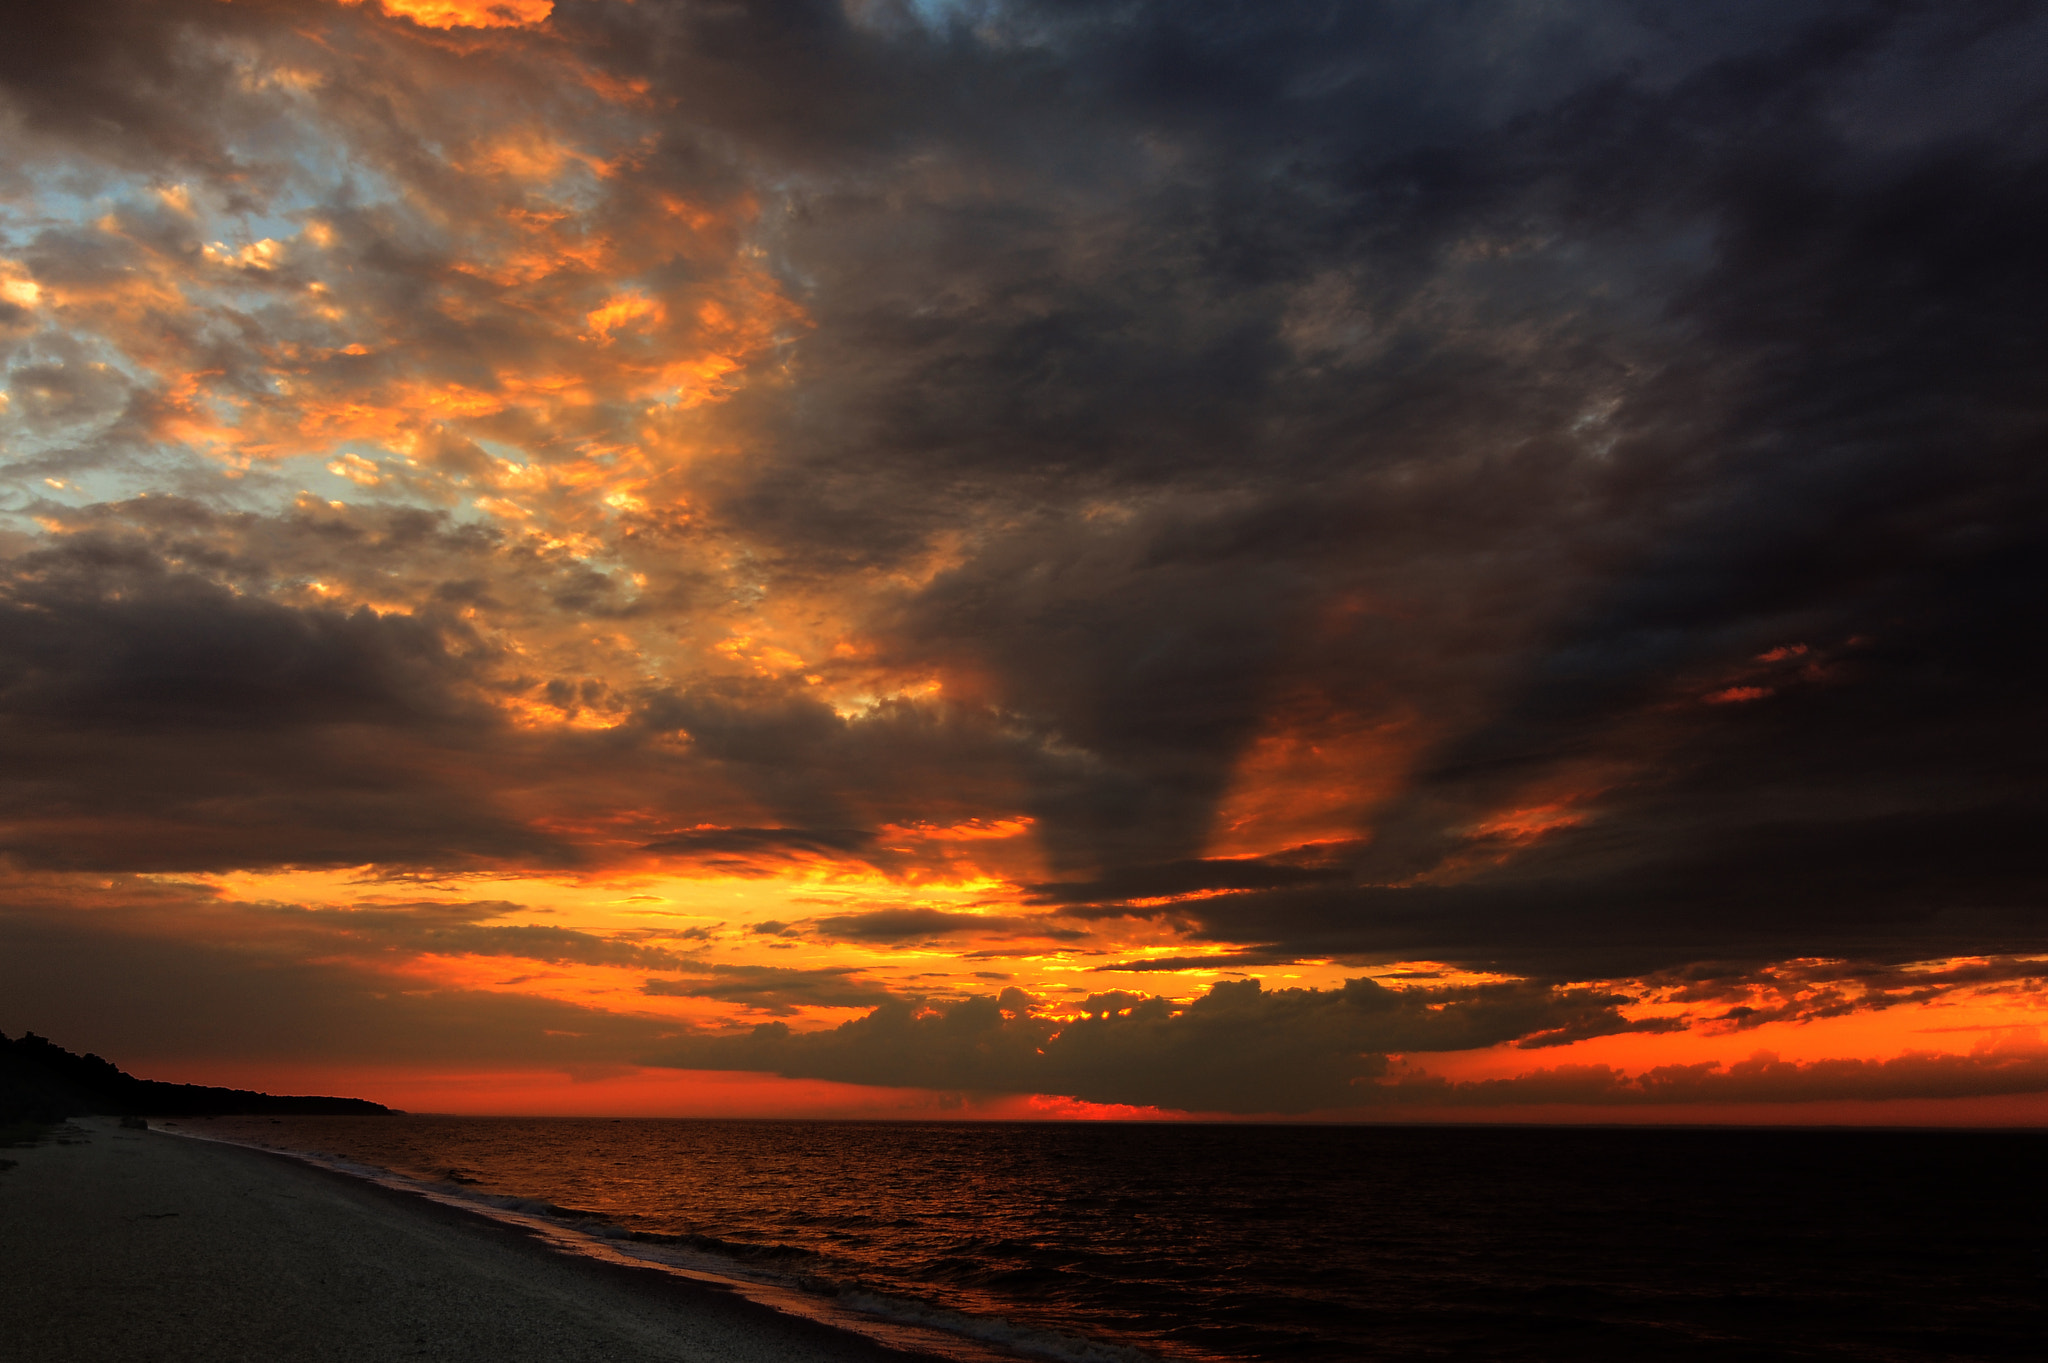 Photograph Fire in the sky by Oleg Smirnov on 500px